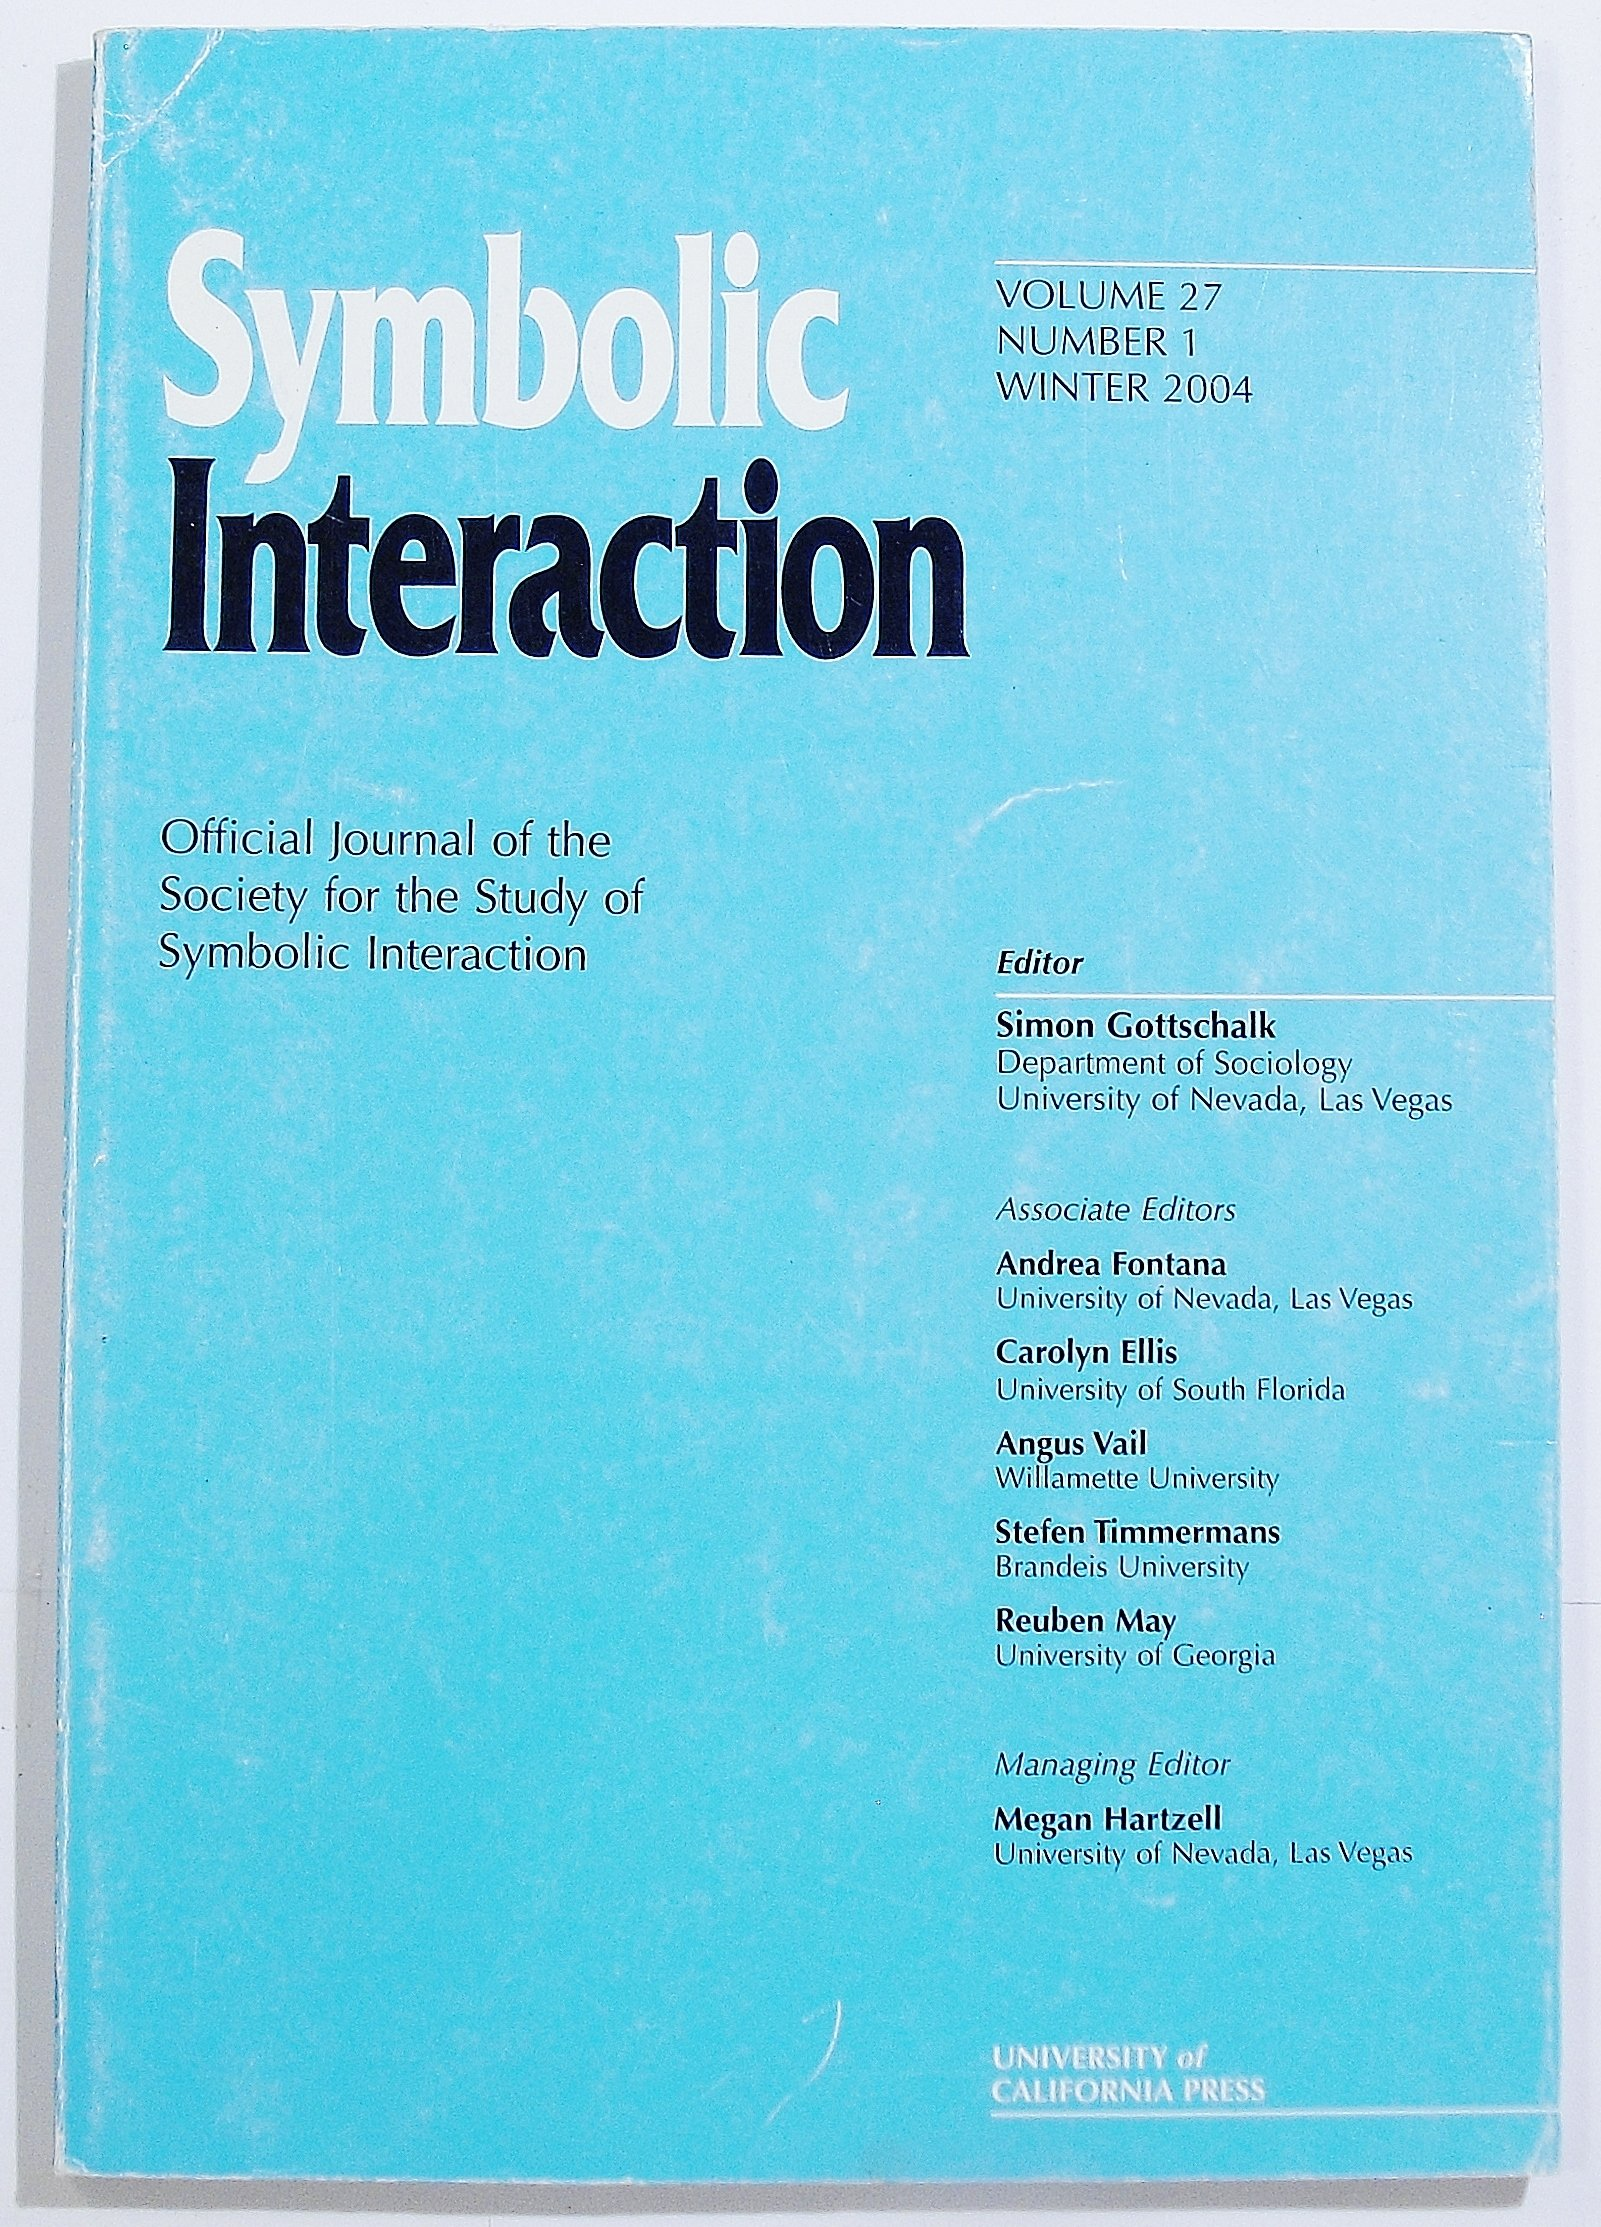 Symbolic Interaction Volume 27 Number 1 Winter 2004 Leslie Irvine